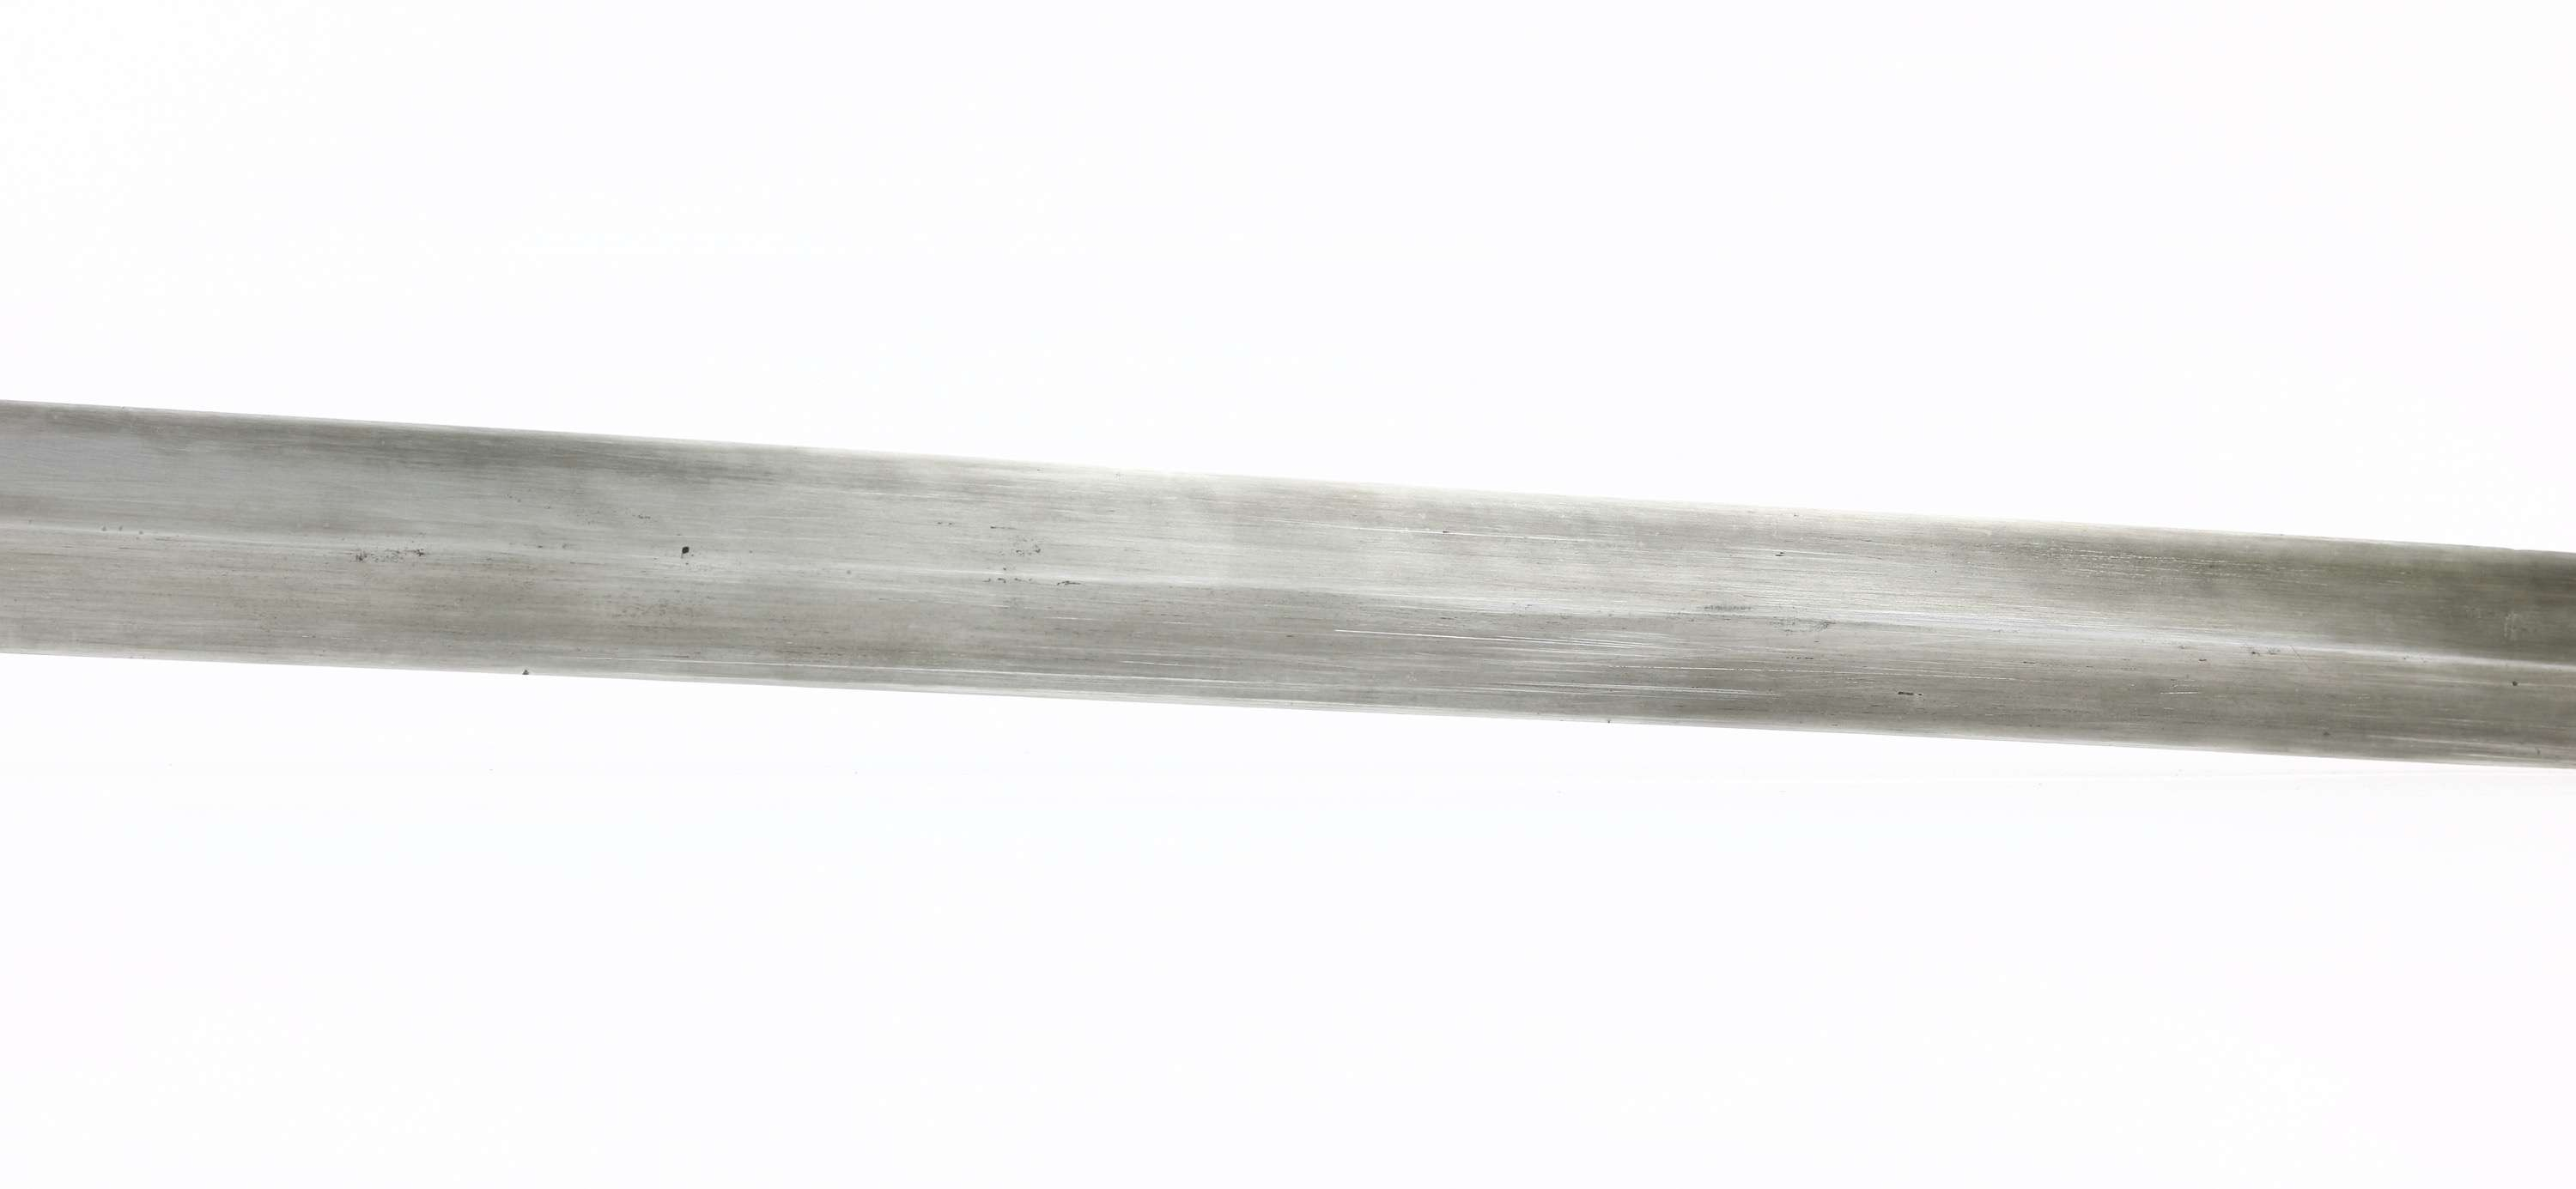 A Republican period jian (Chinese straightsword)